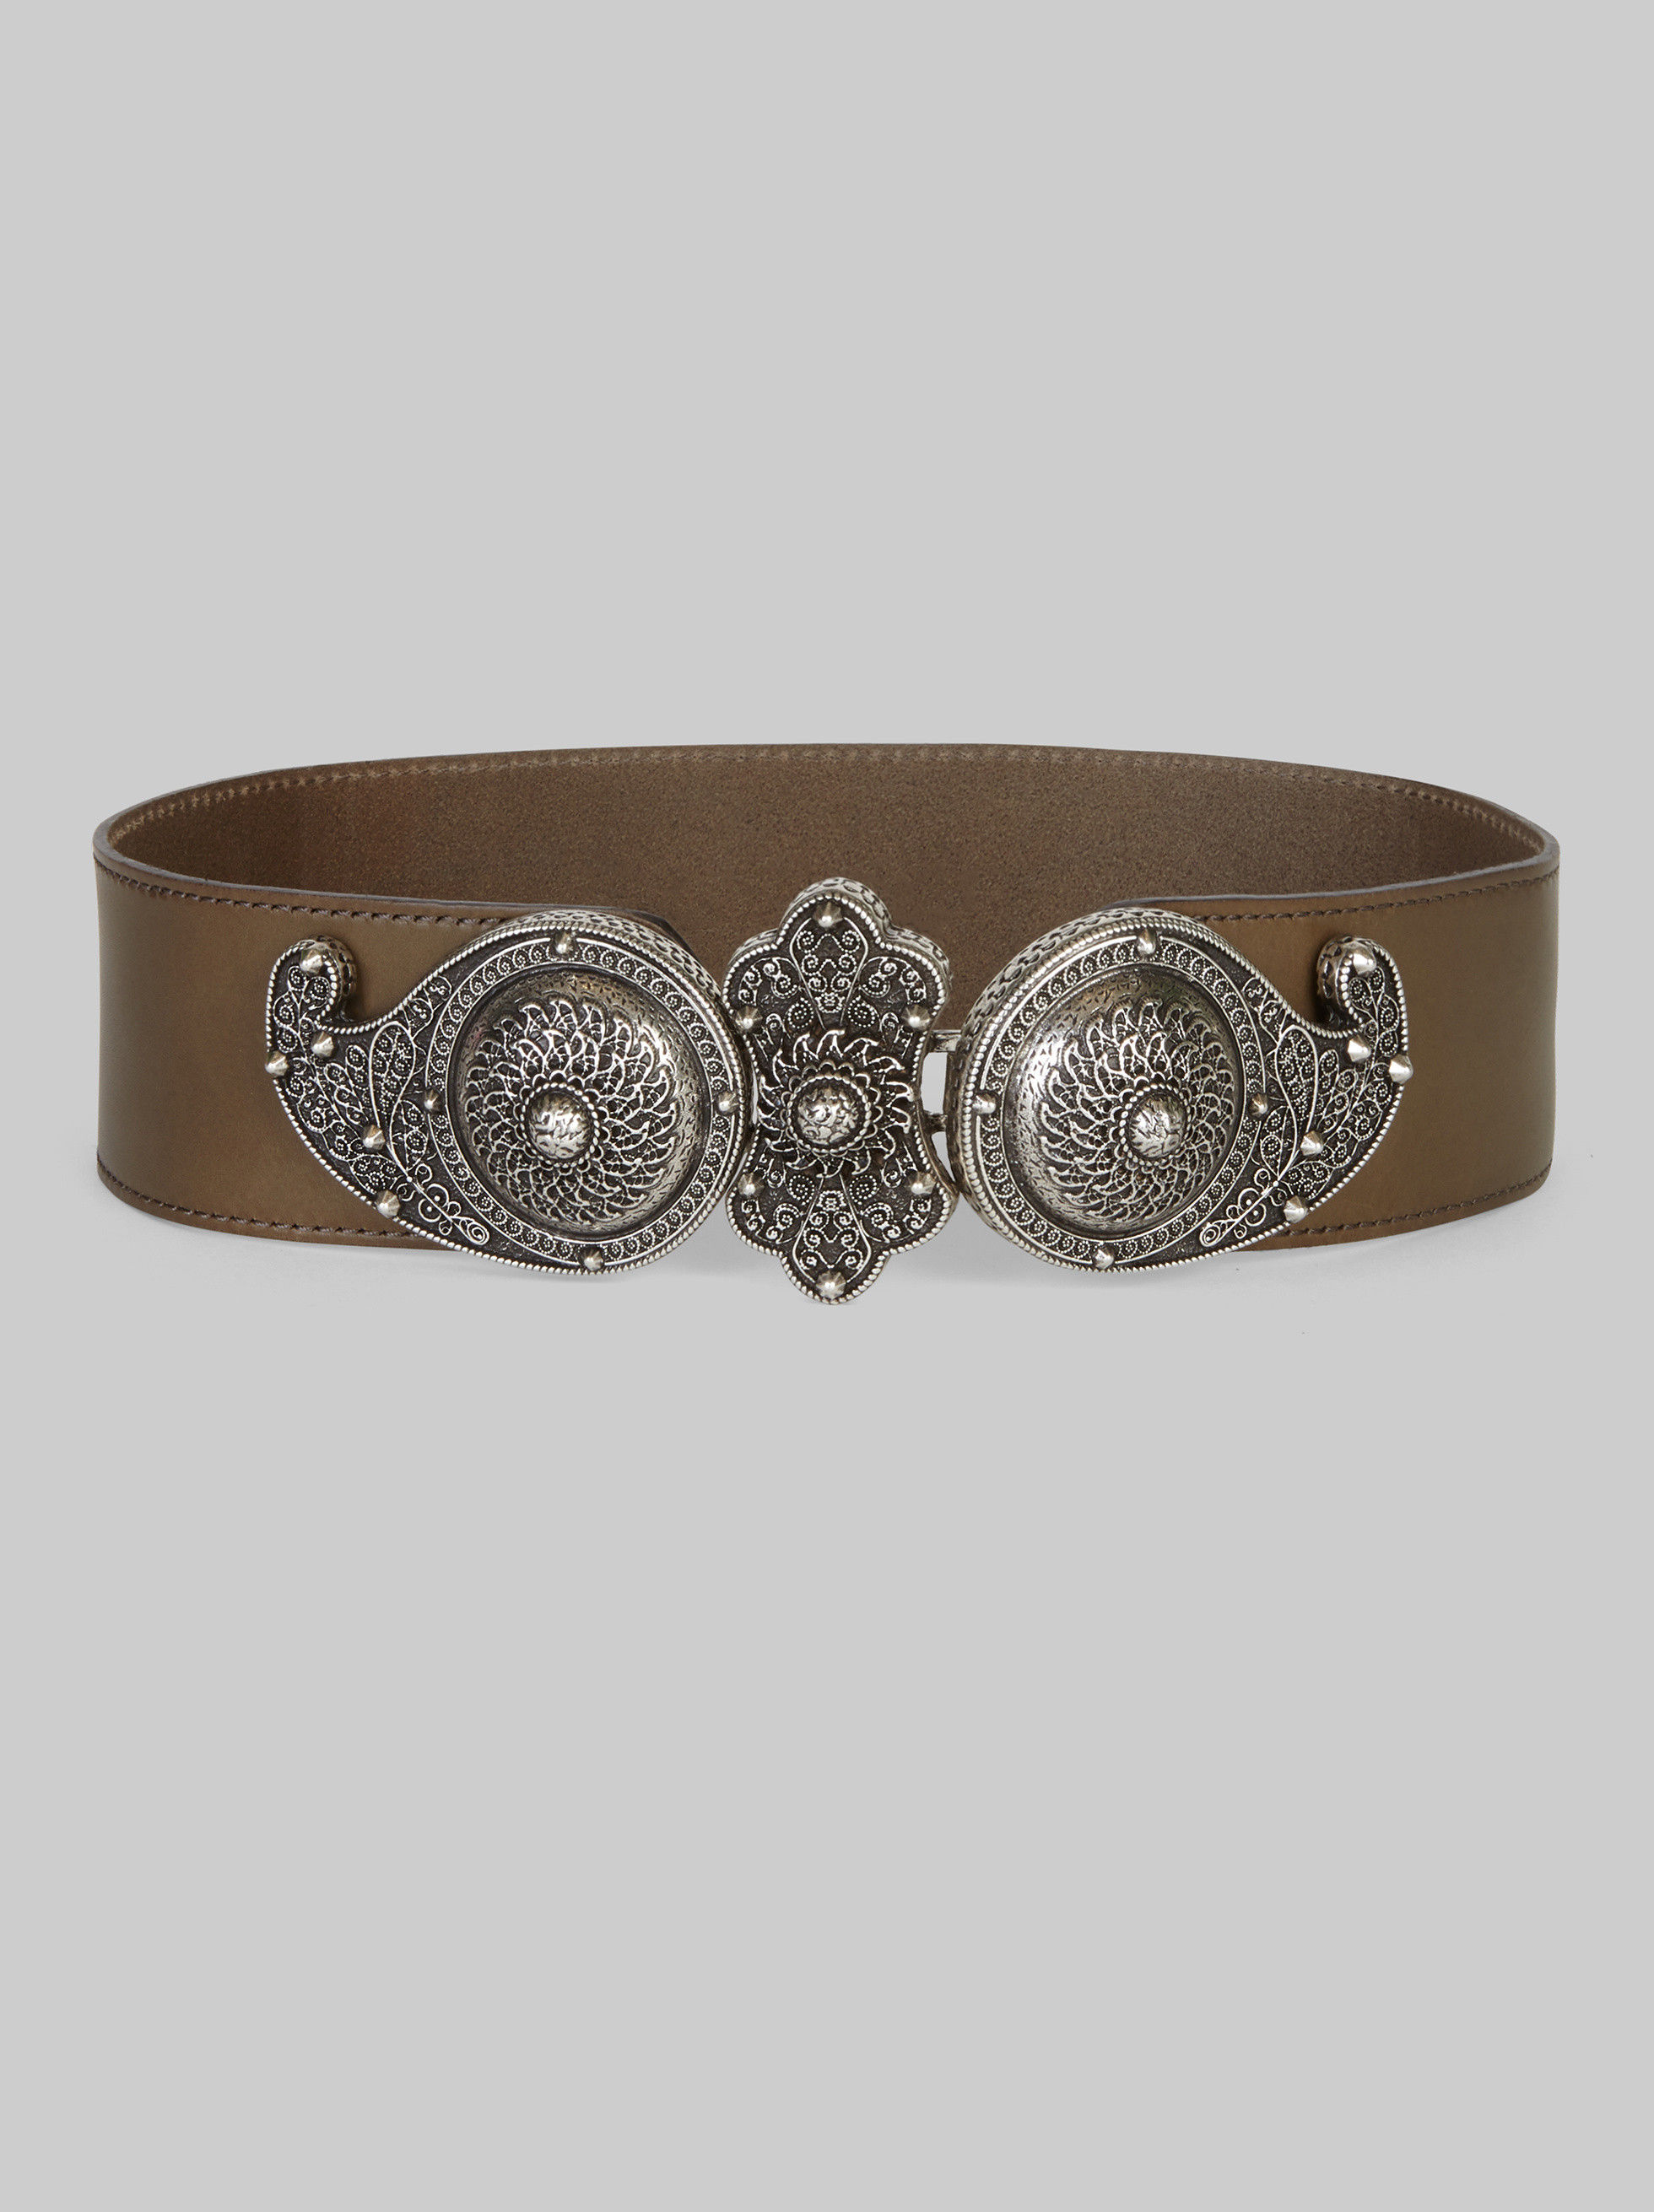 LEATHER BELT WITH PAISLEY BUCKLE